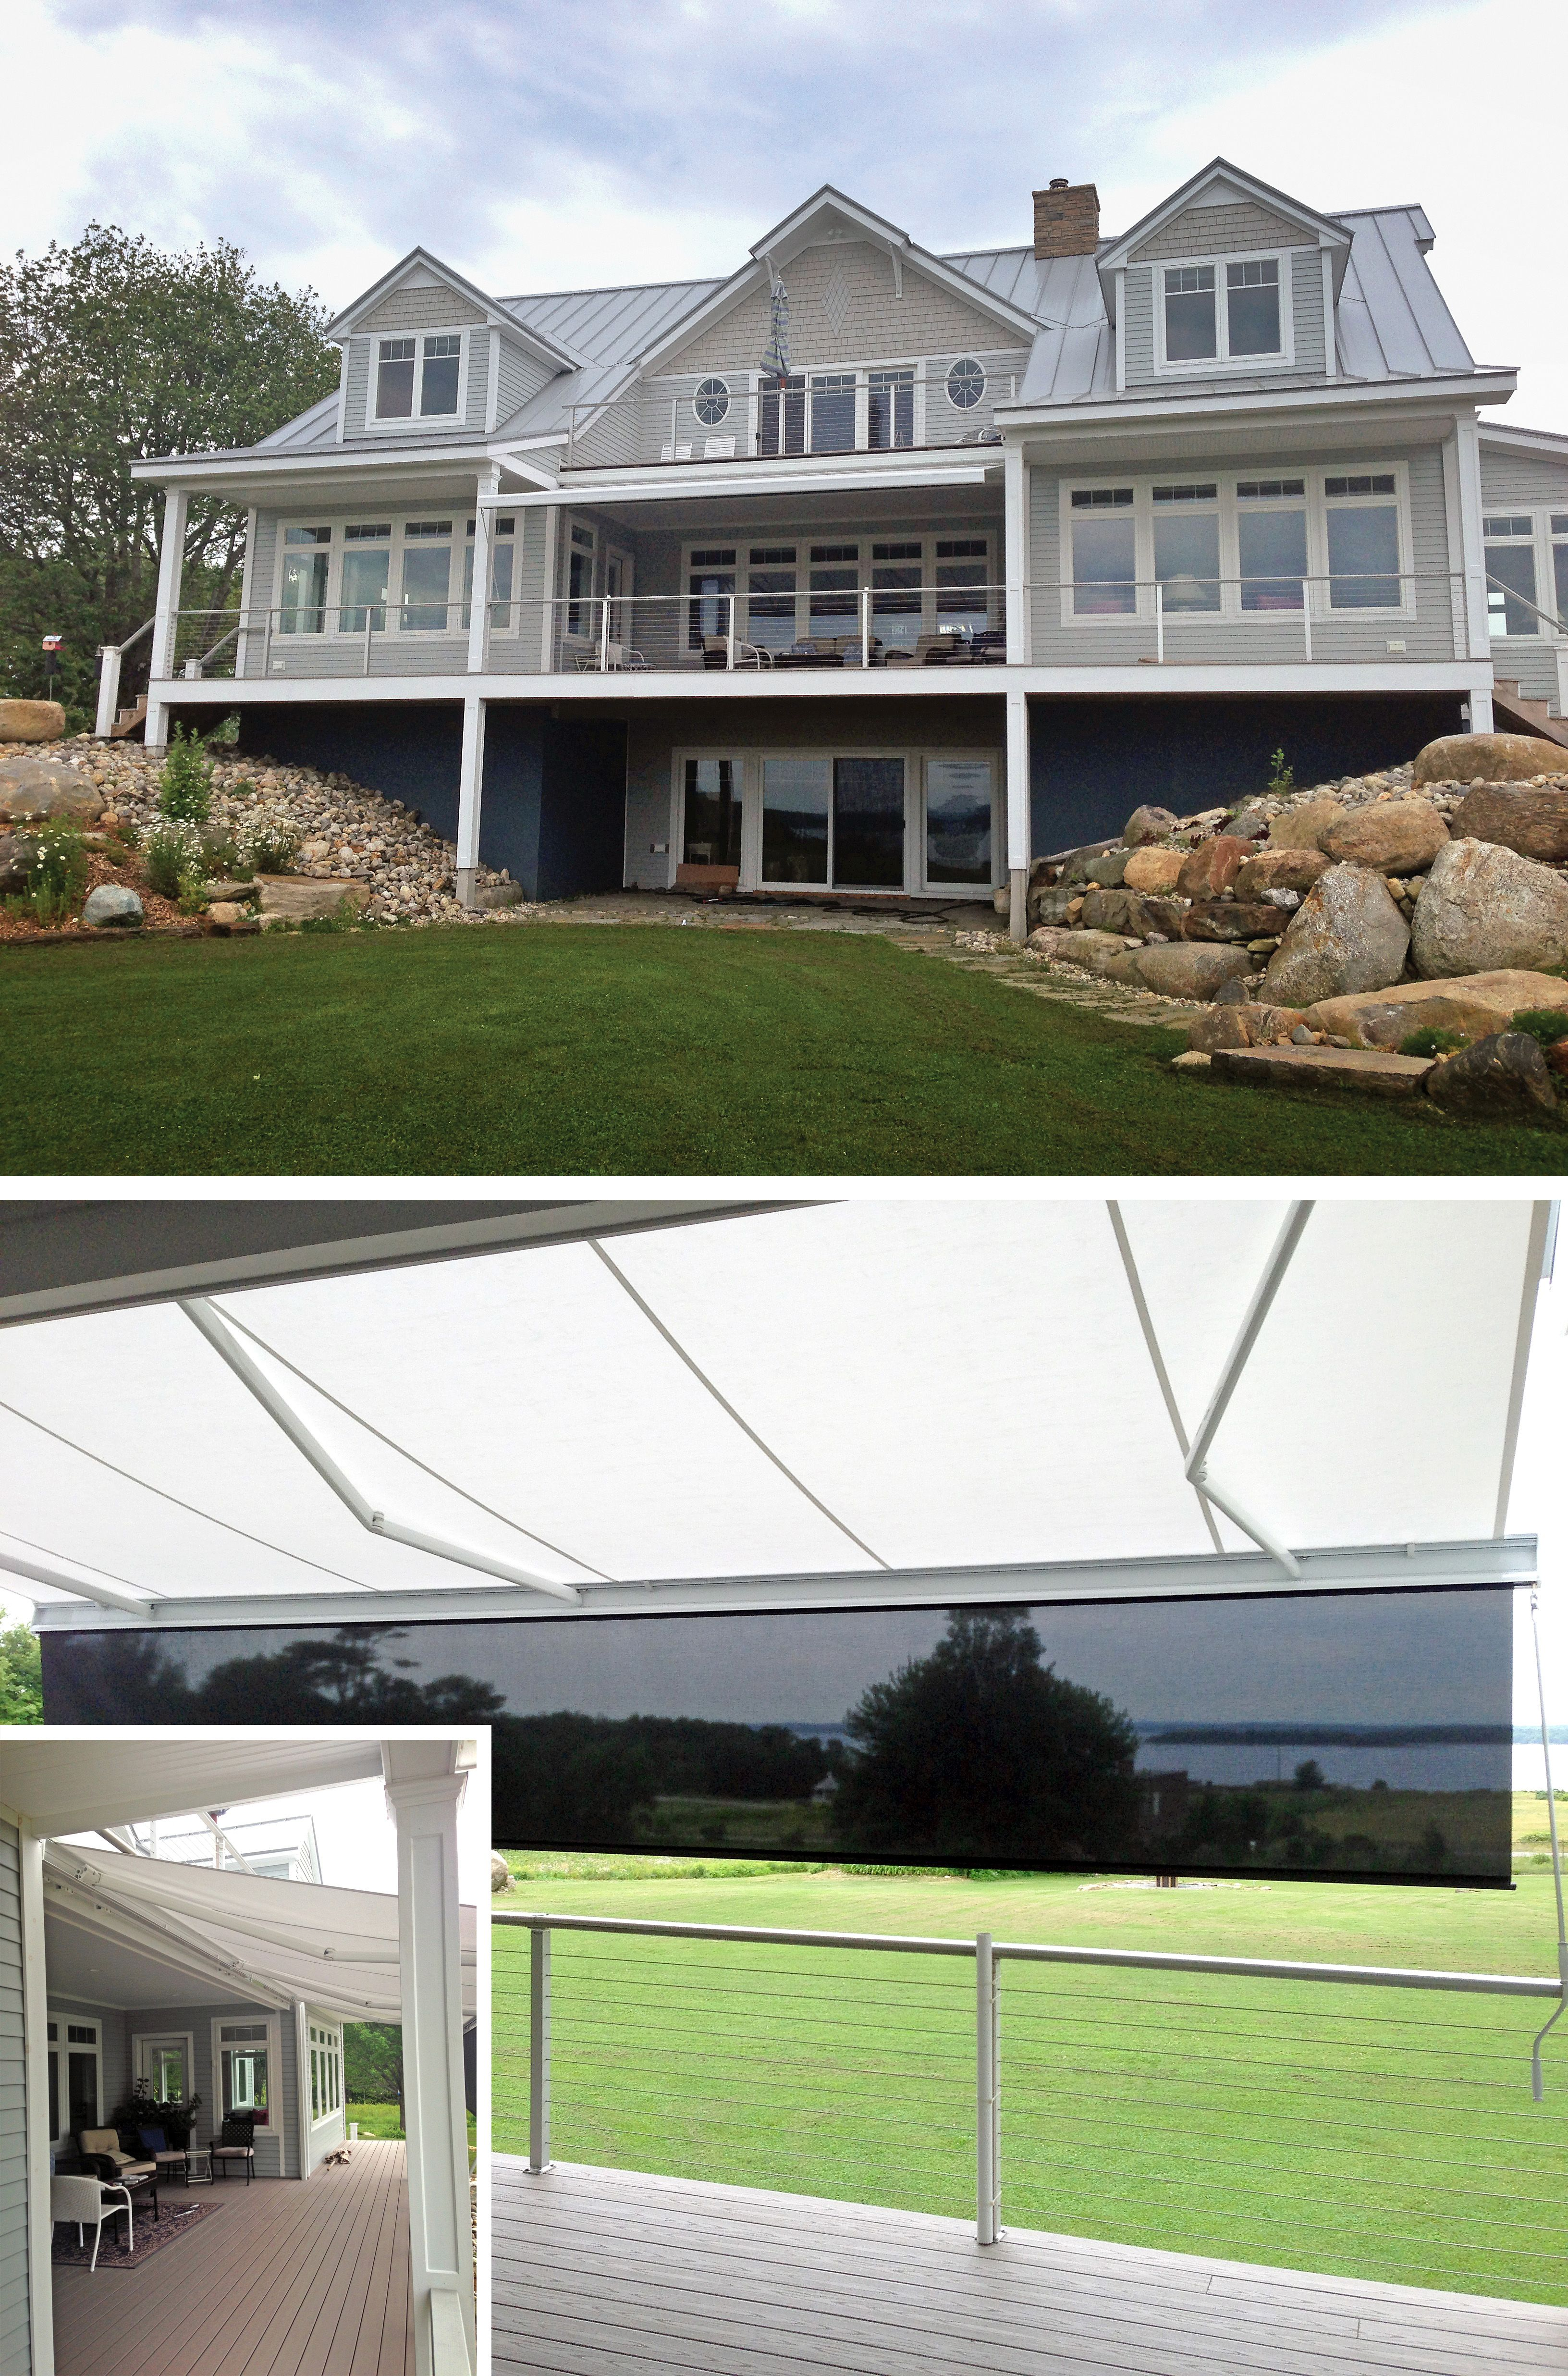 various awning england is commercial dunkin nuimage for of awnings new donuts pin quality service maine an provider manufacturer by highest residential solutions all and custom